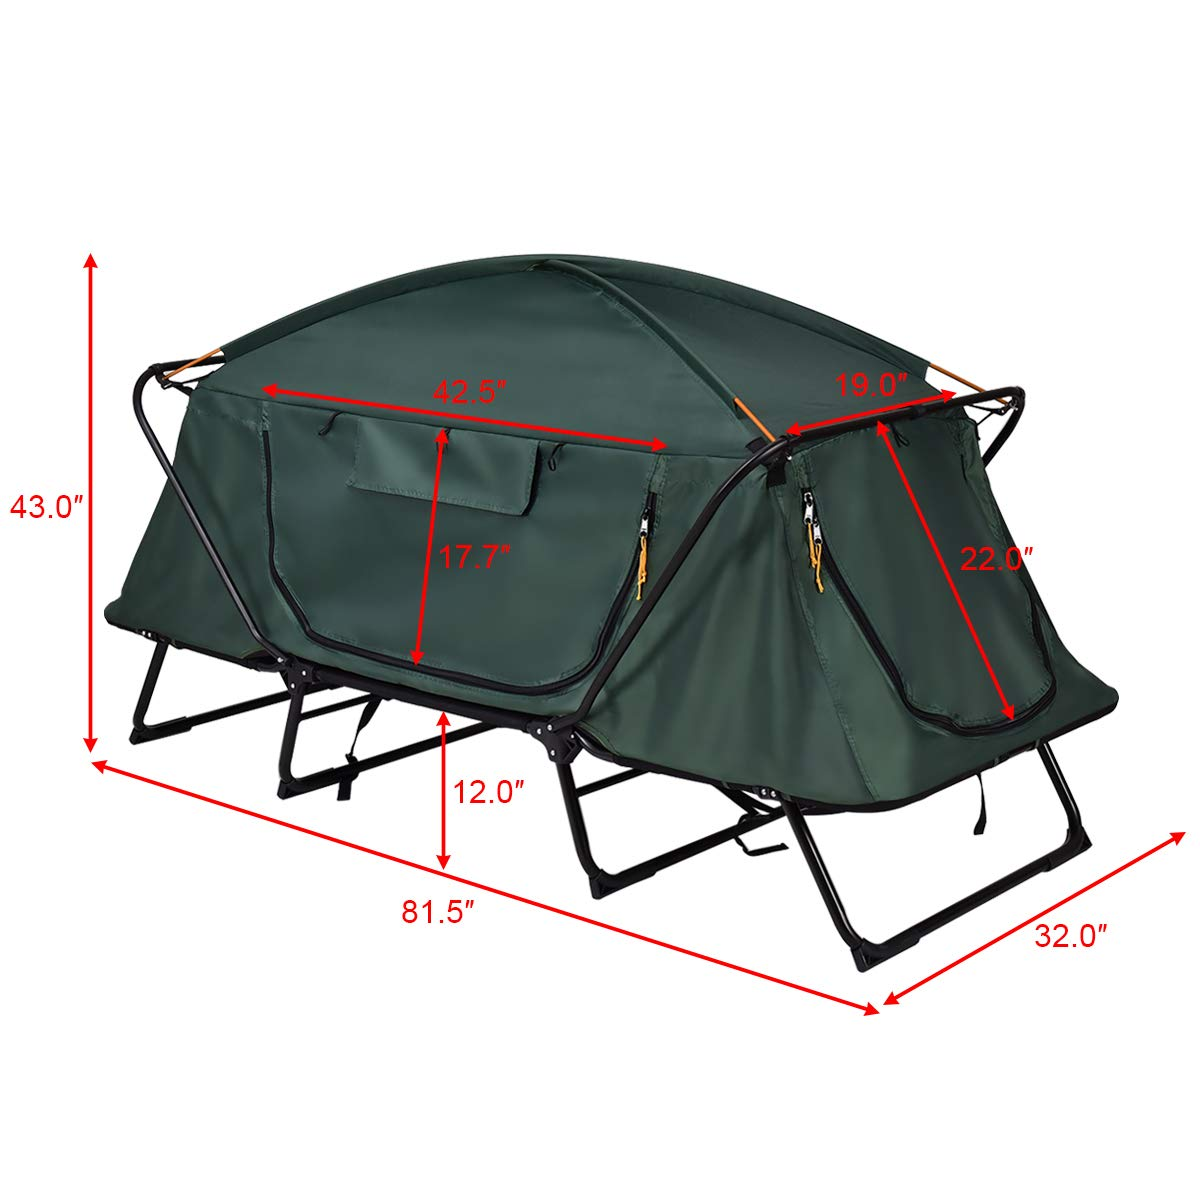 GYMAX Tent Cot, 1 Person Foldable Camping Waterproof Shelter with Window Carry Bag by GYMAX (Image #1)